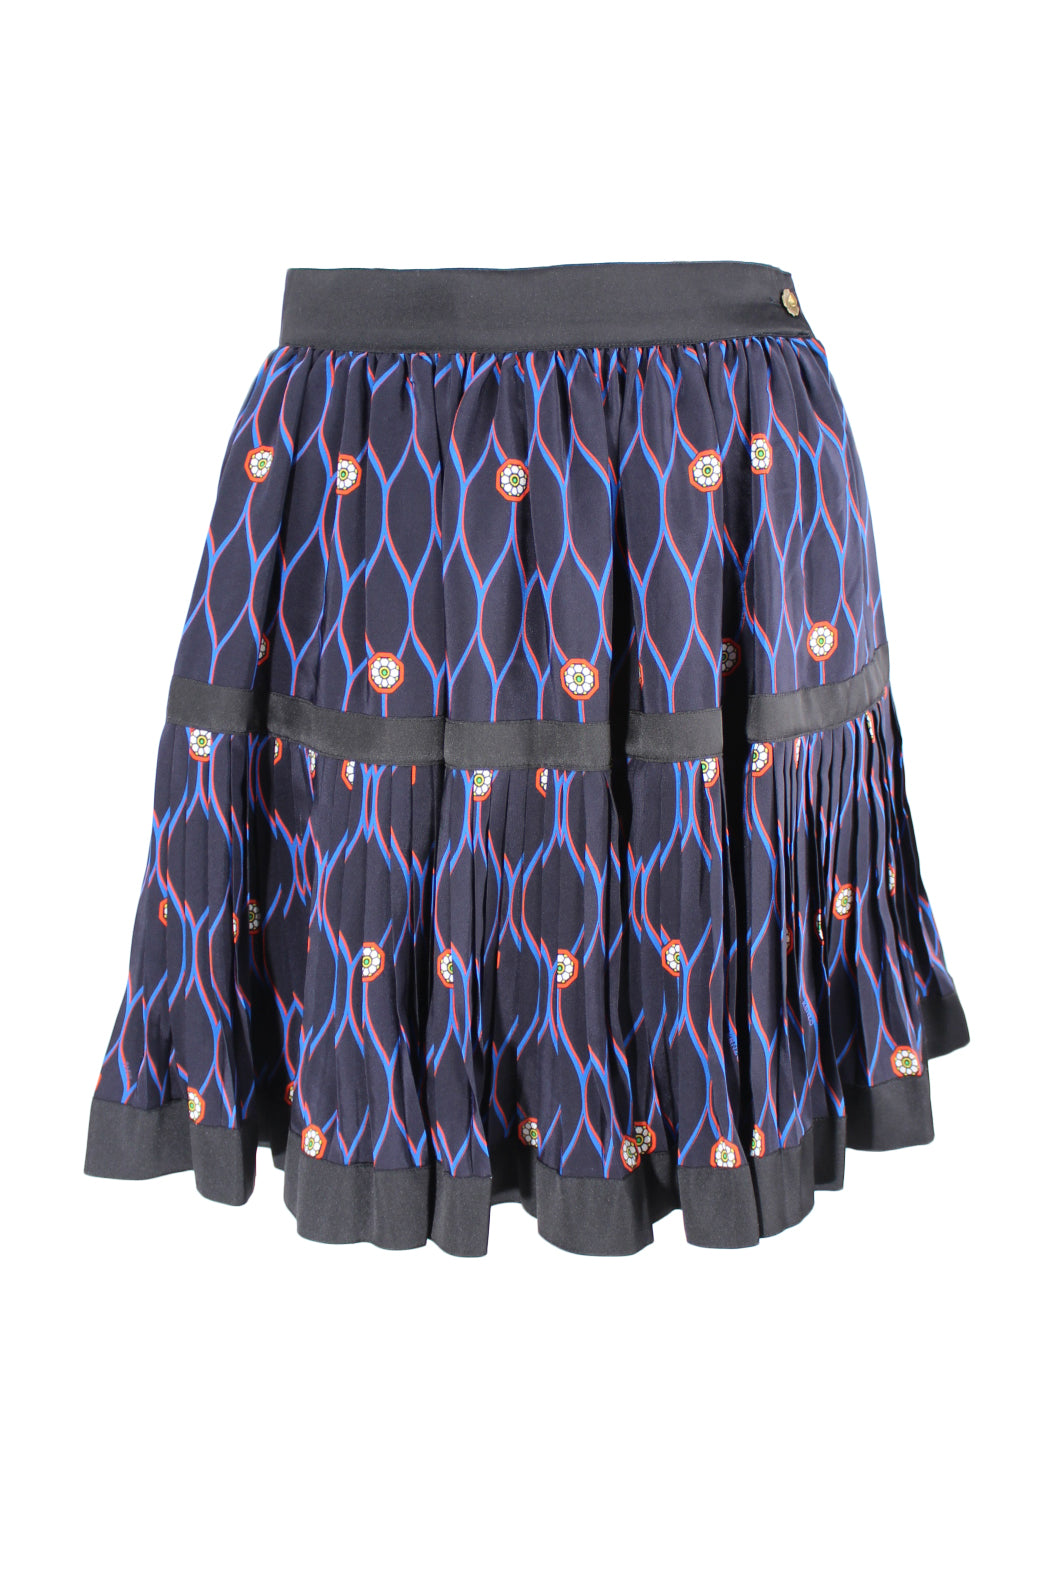 kenzo x h&m navy & black jewel print pleated skirt. featuring black ribbon tiered banding, and concealed back zip & gold flower button closure.